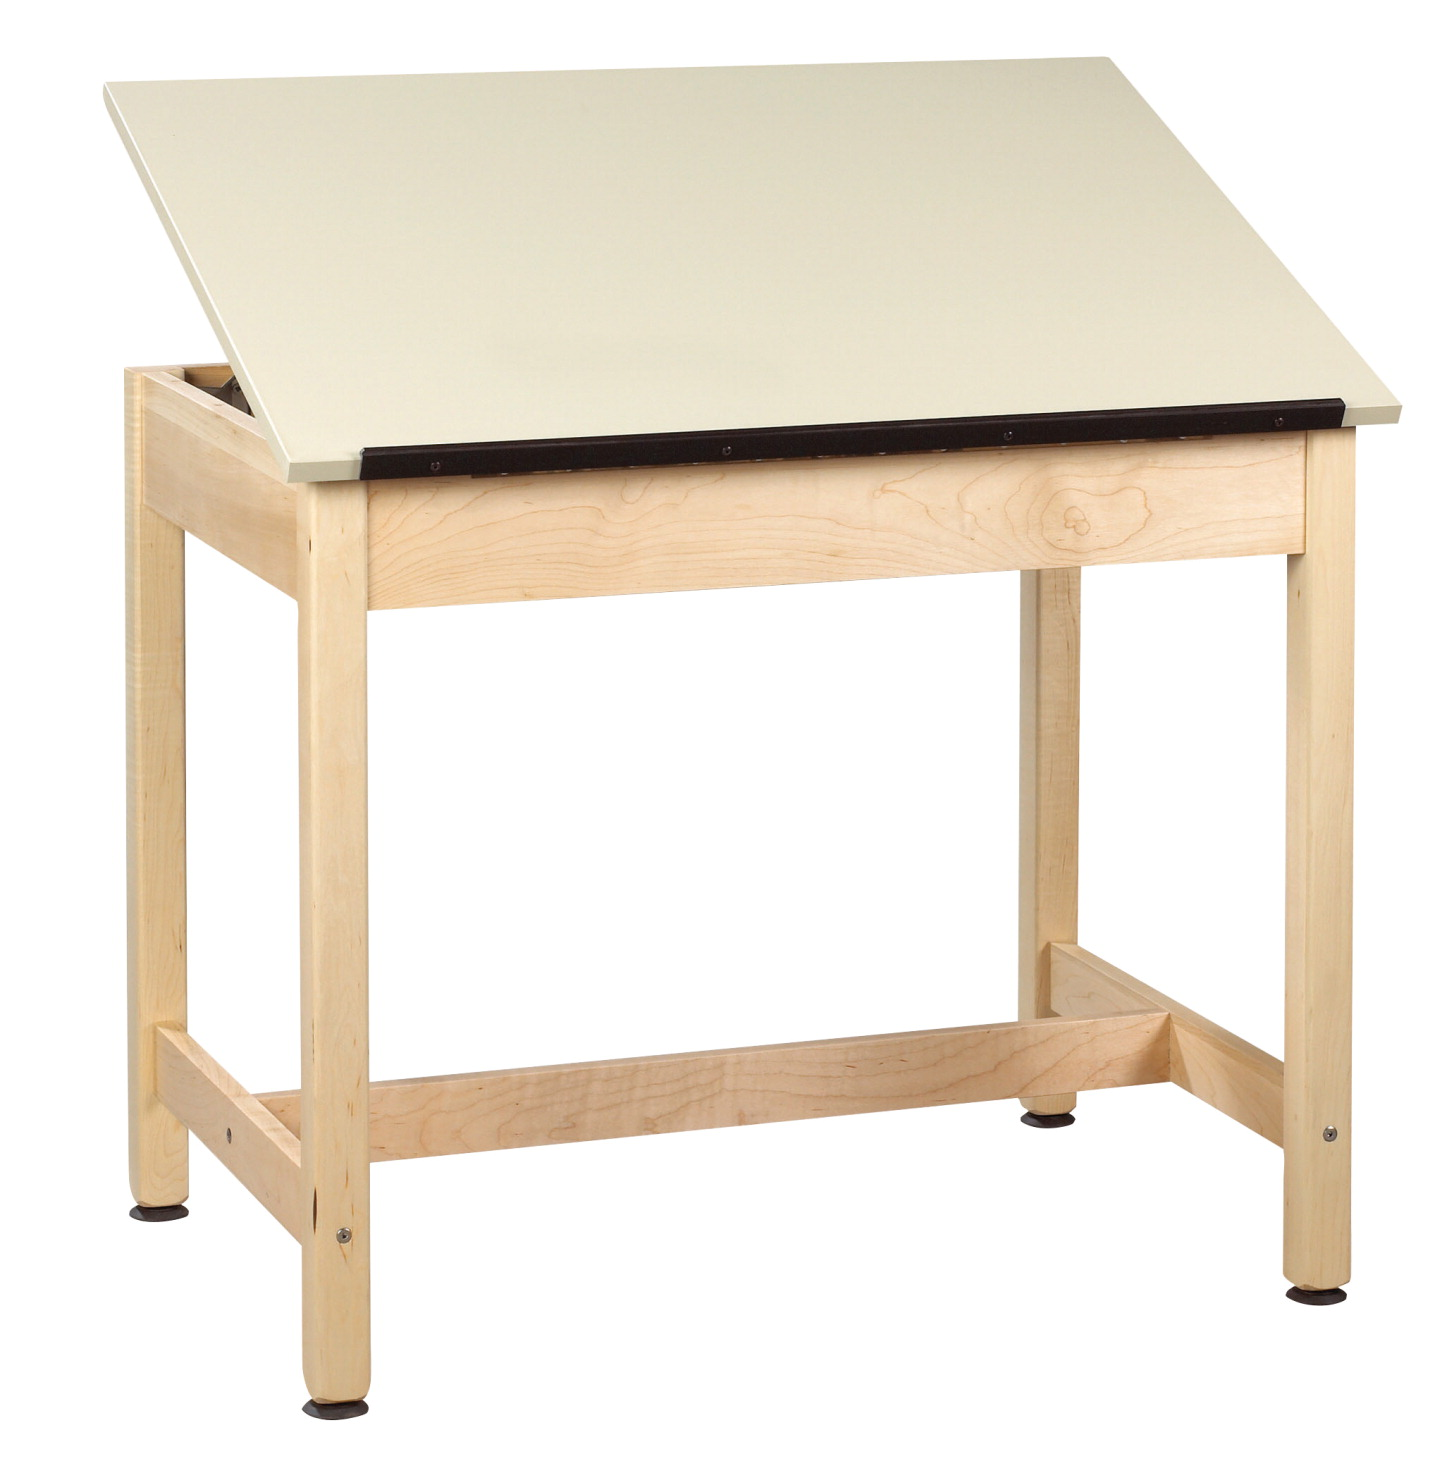 Diversified Woodcrafts 1-Piece Drafting Table, 36 x 24 x 36 Inches, Maple and Plastic